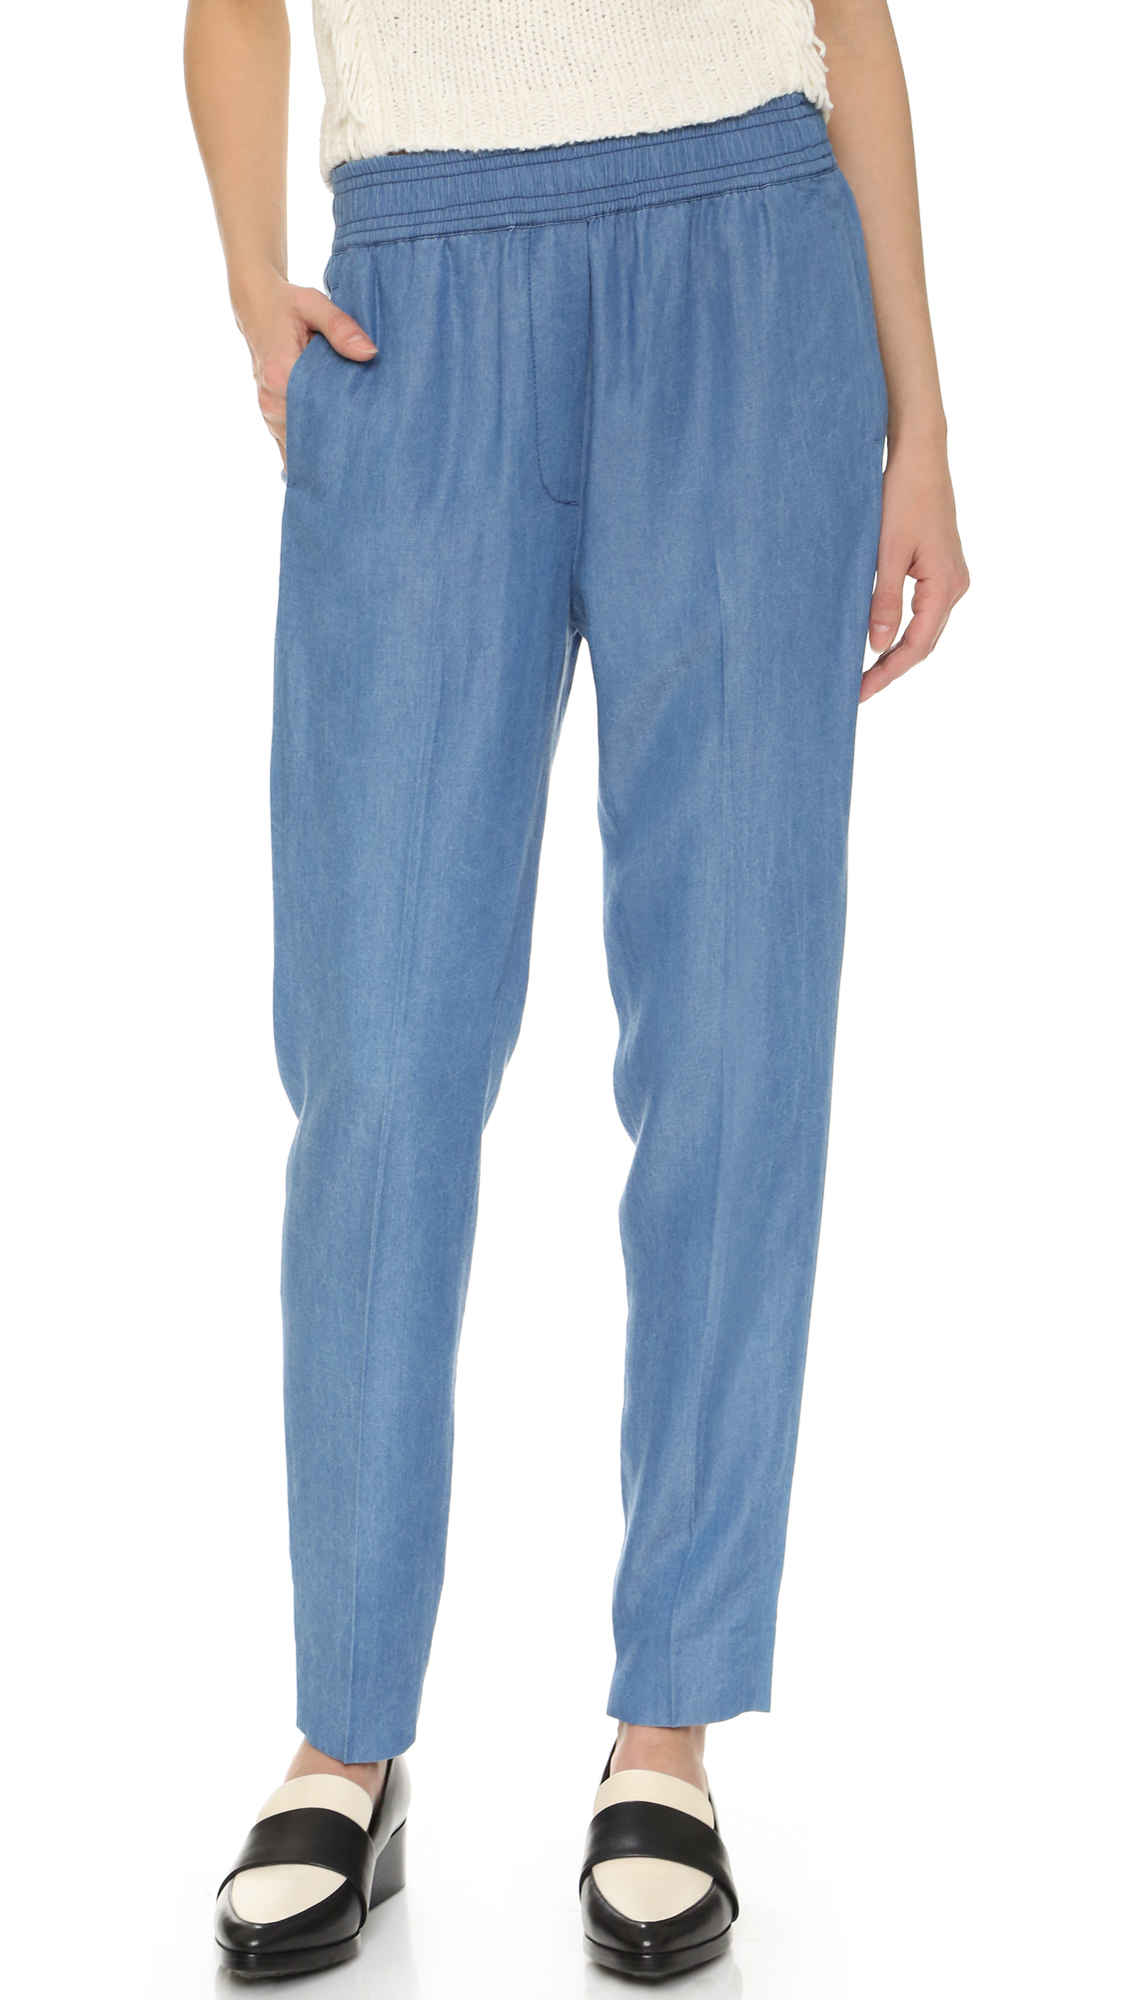 Lyst 3 1 phillip lim chambray pants in blue for Chambray jeans